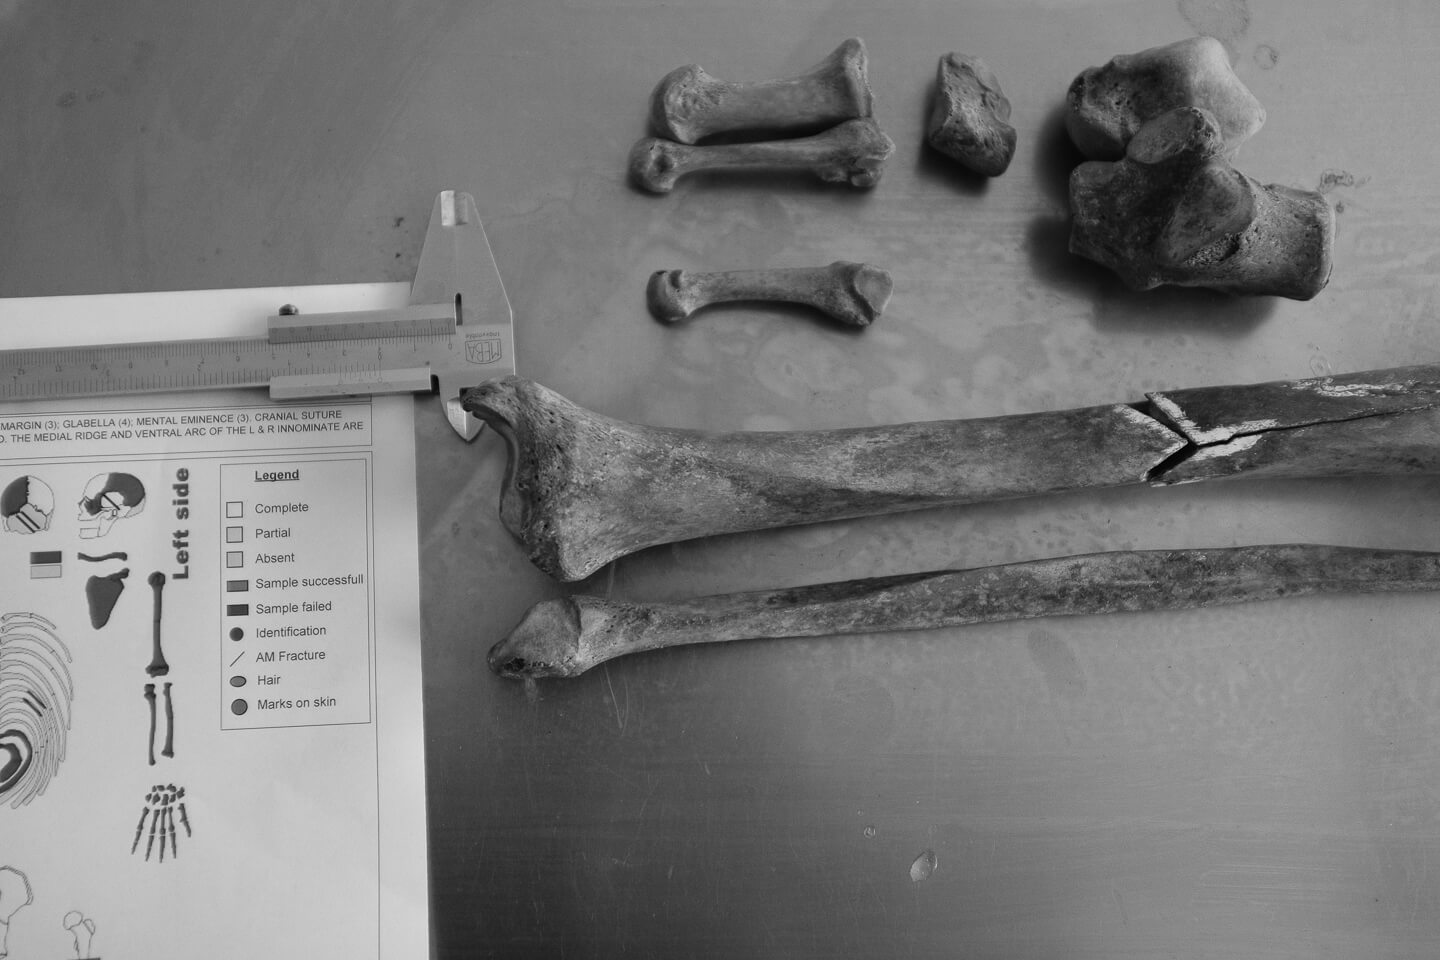 Human bones and fragments on the table at ICMP identification facility in Tuzla.